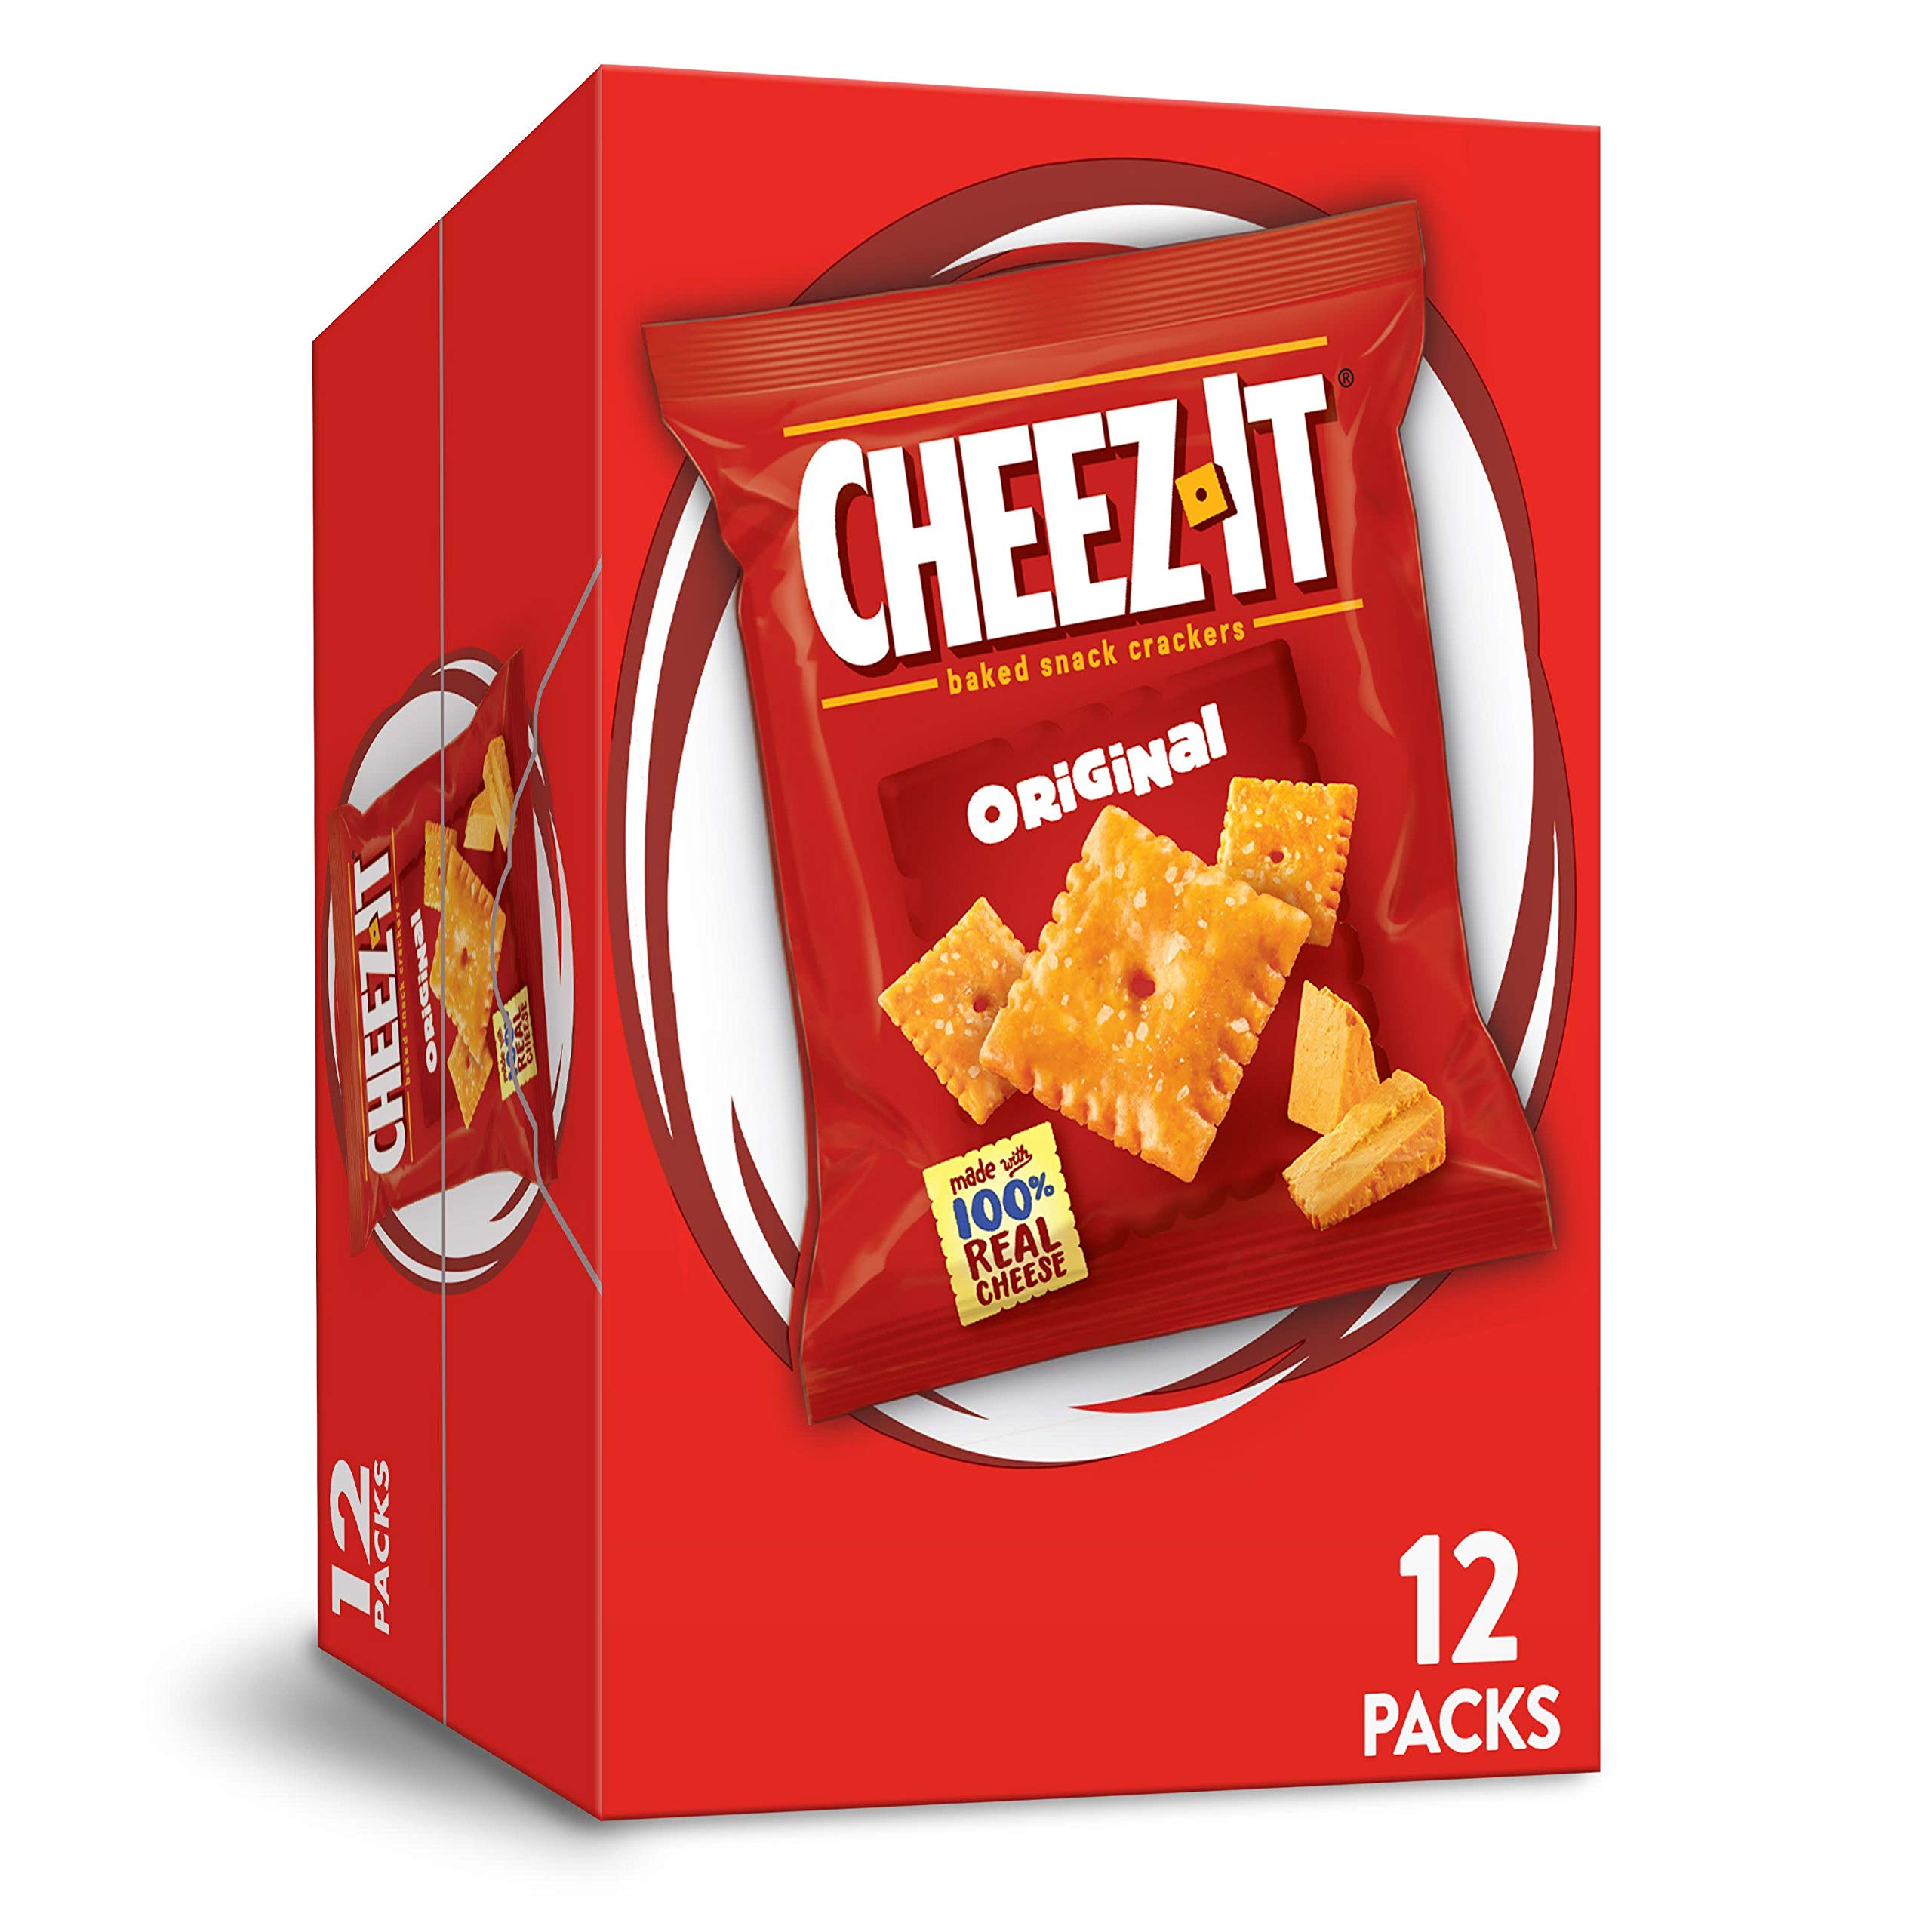 Cheez-It Baked Snack Cheese Crackers, Original, Single Serve, 1 oz Bags (12 Count)